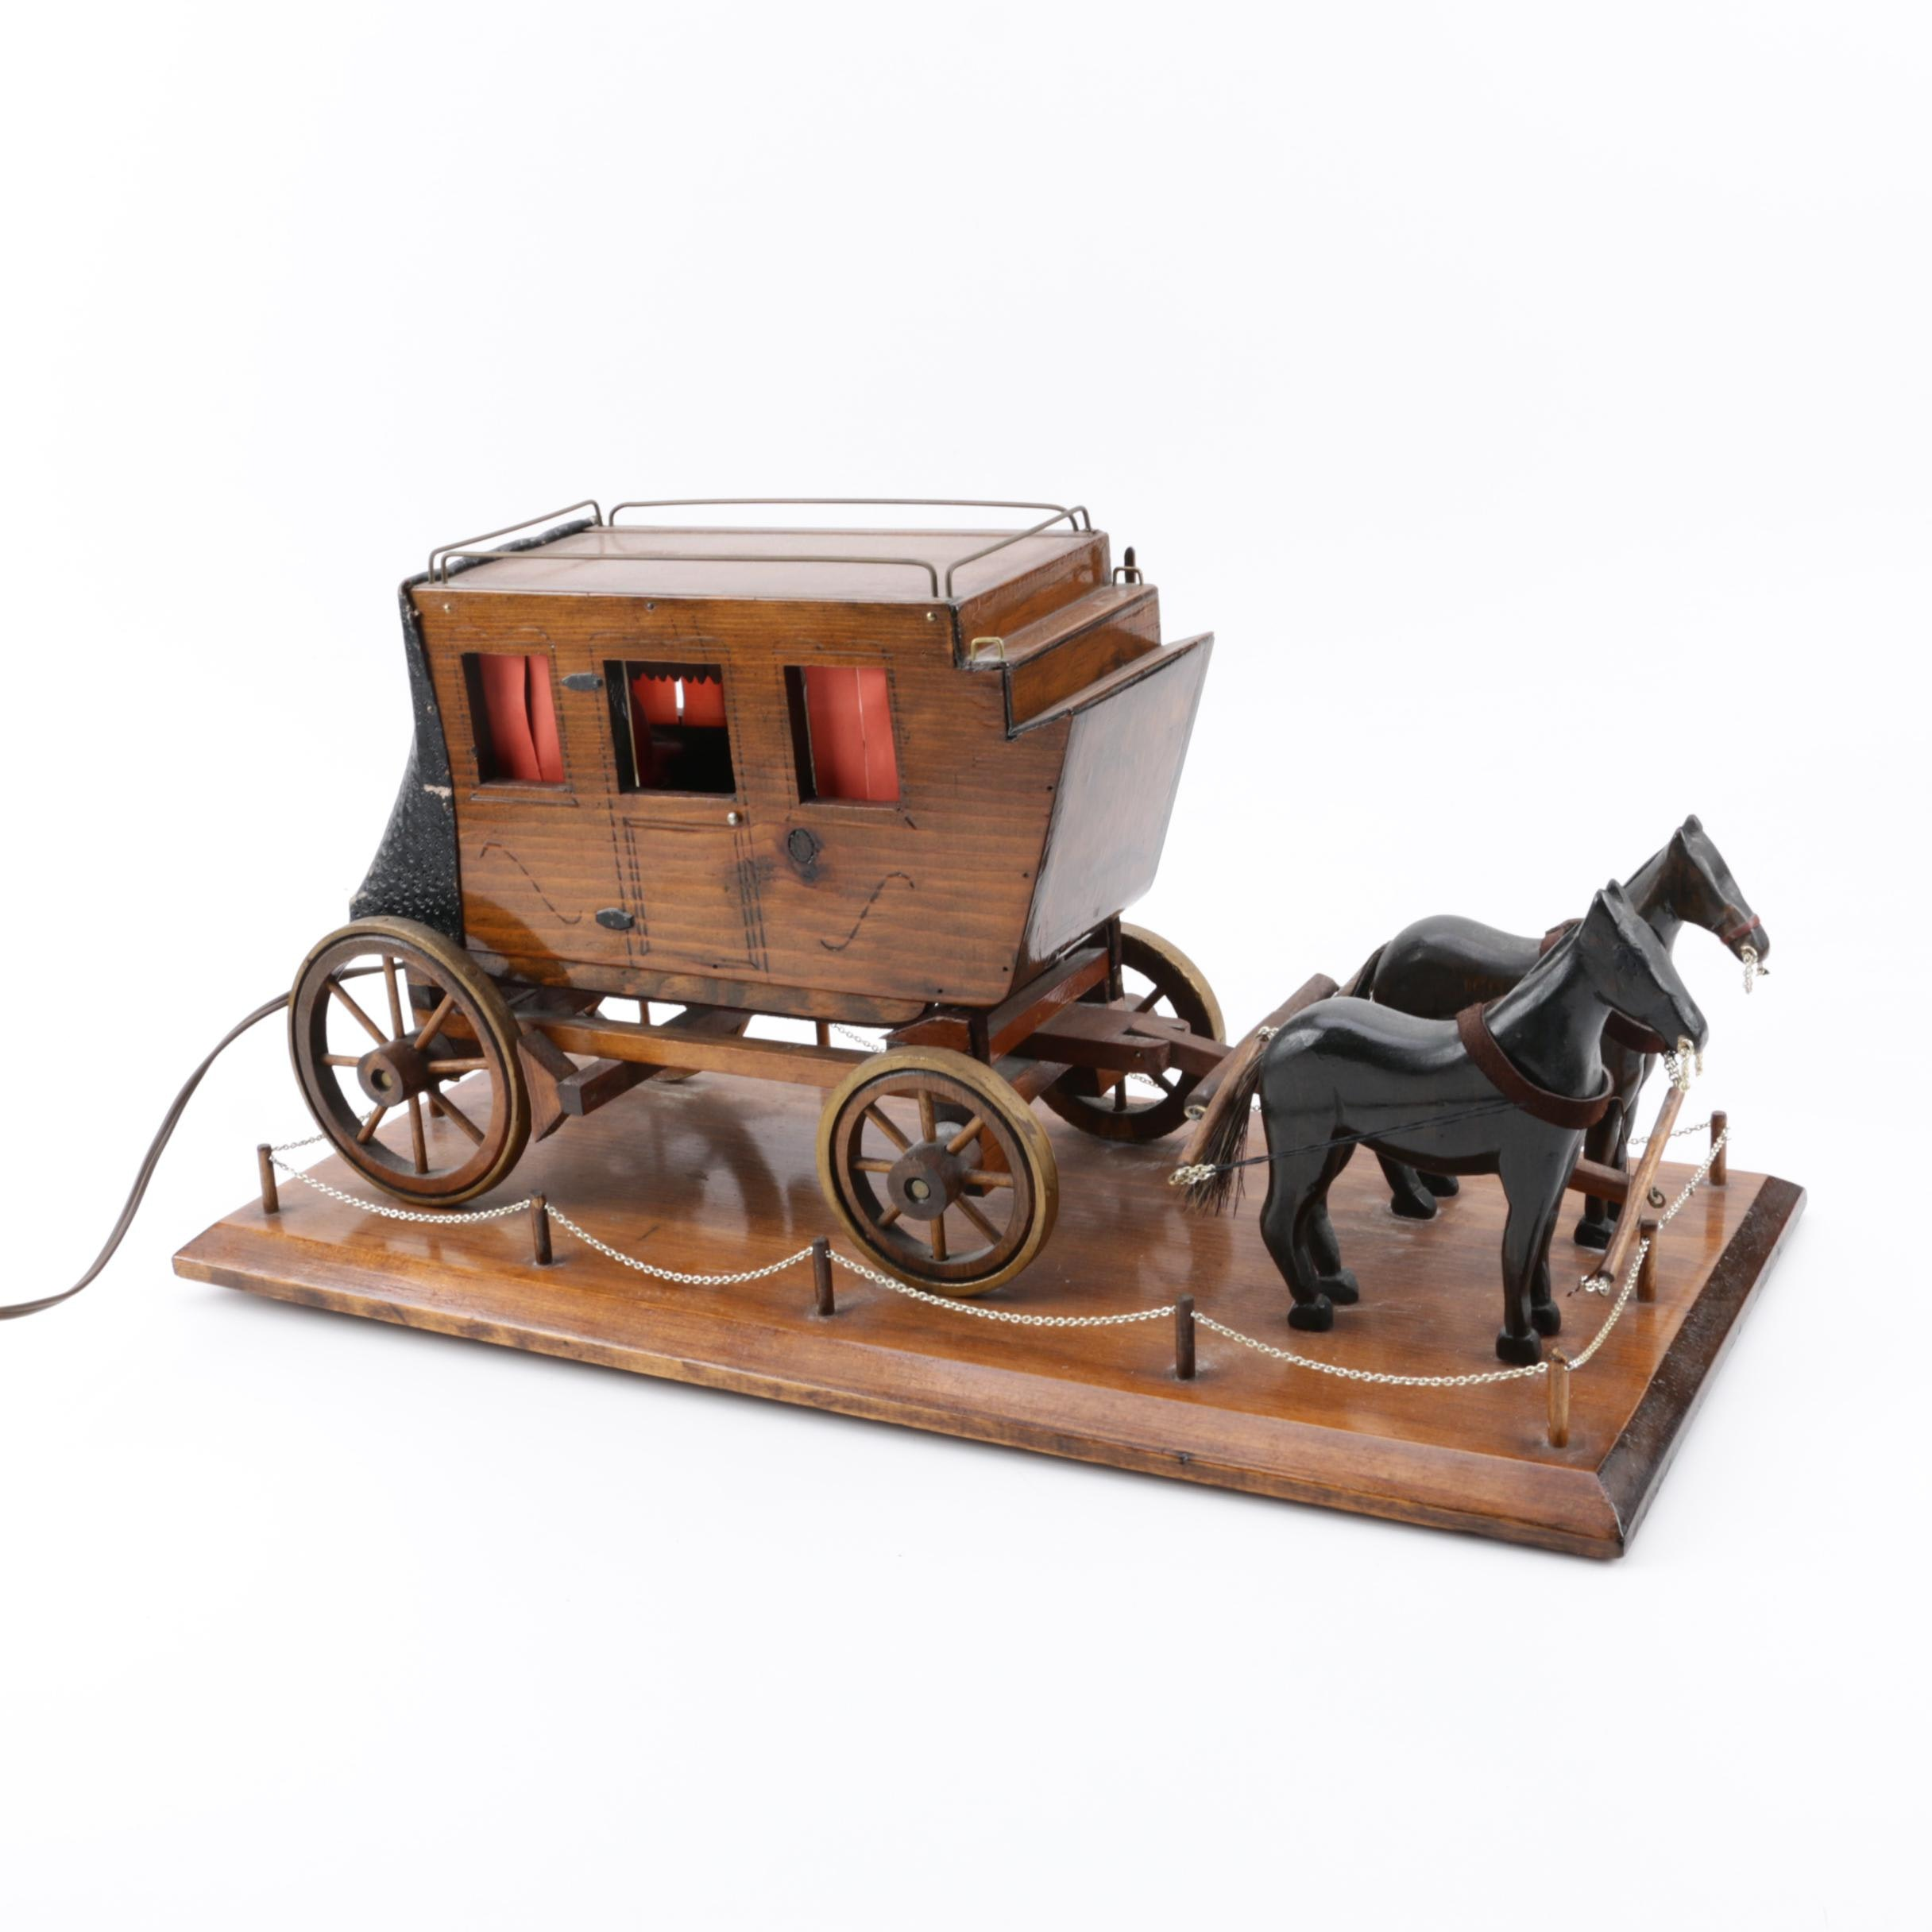 Vintage Handmade Wooden Miniature Horse-Drawn Stagecoach Novelty Accent Lamp